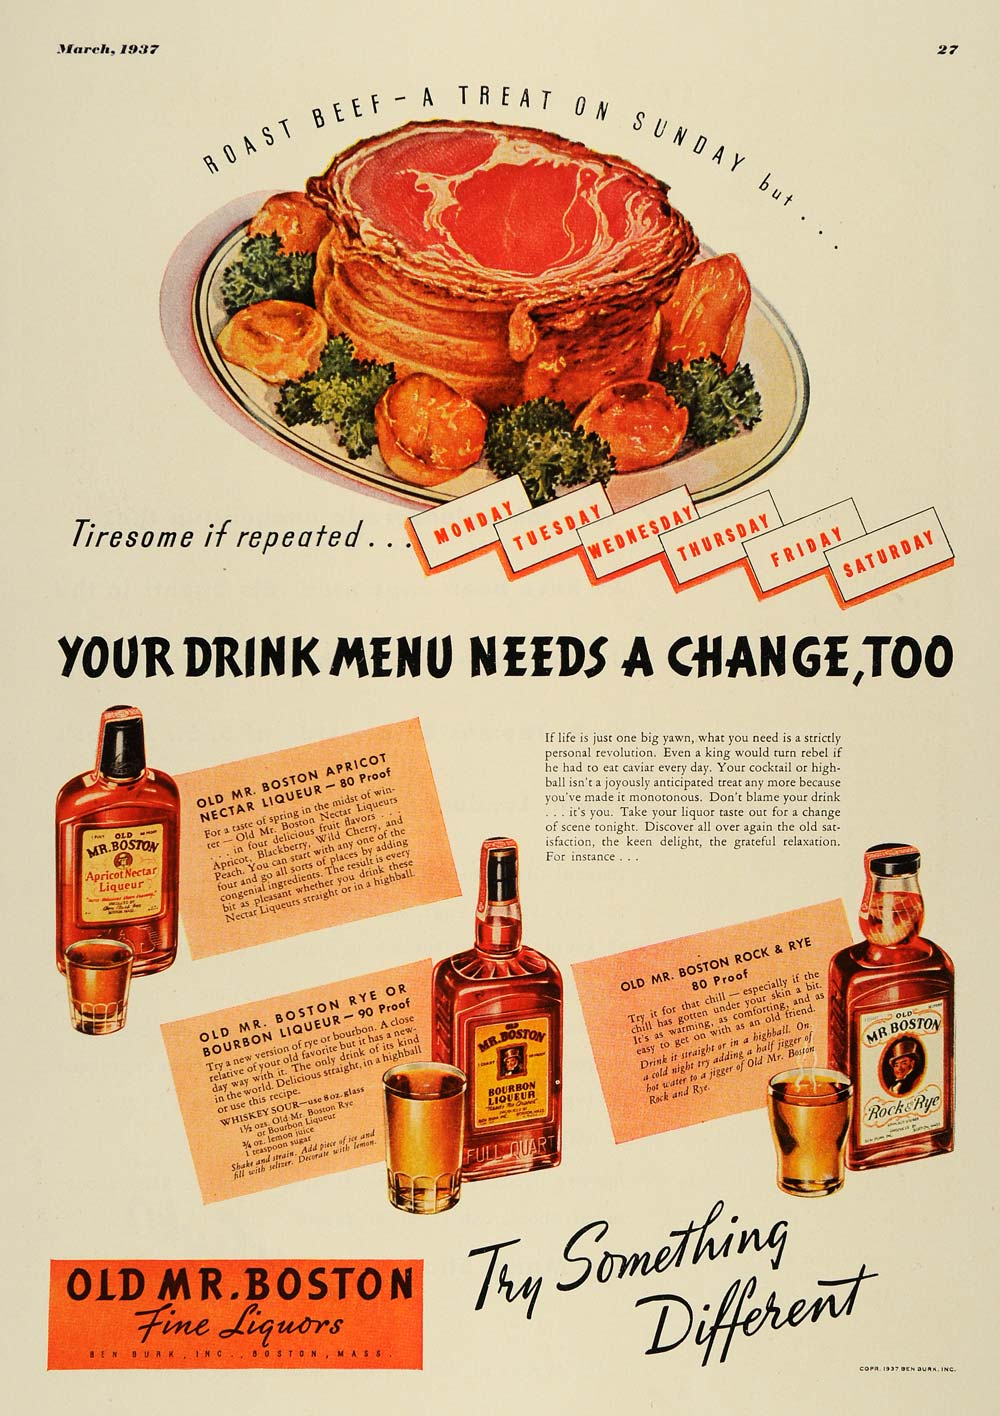 1937 Ad Old Mr. Boston Fine Liquors Apricot Rye Bourbon - ORIGINAL ESQ3